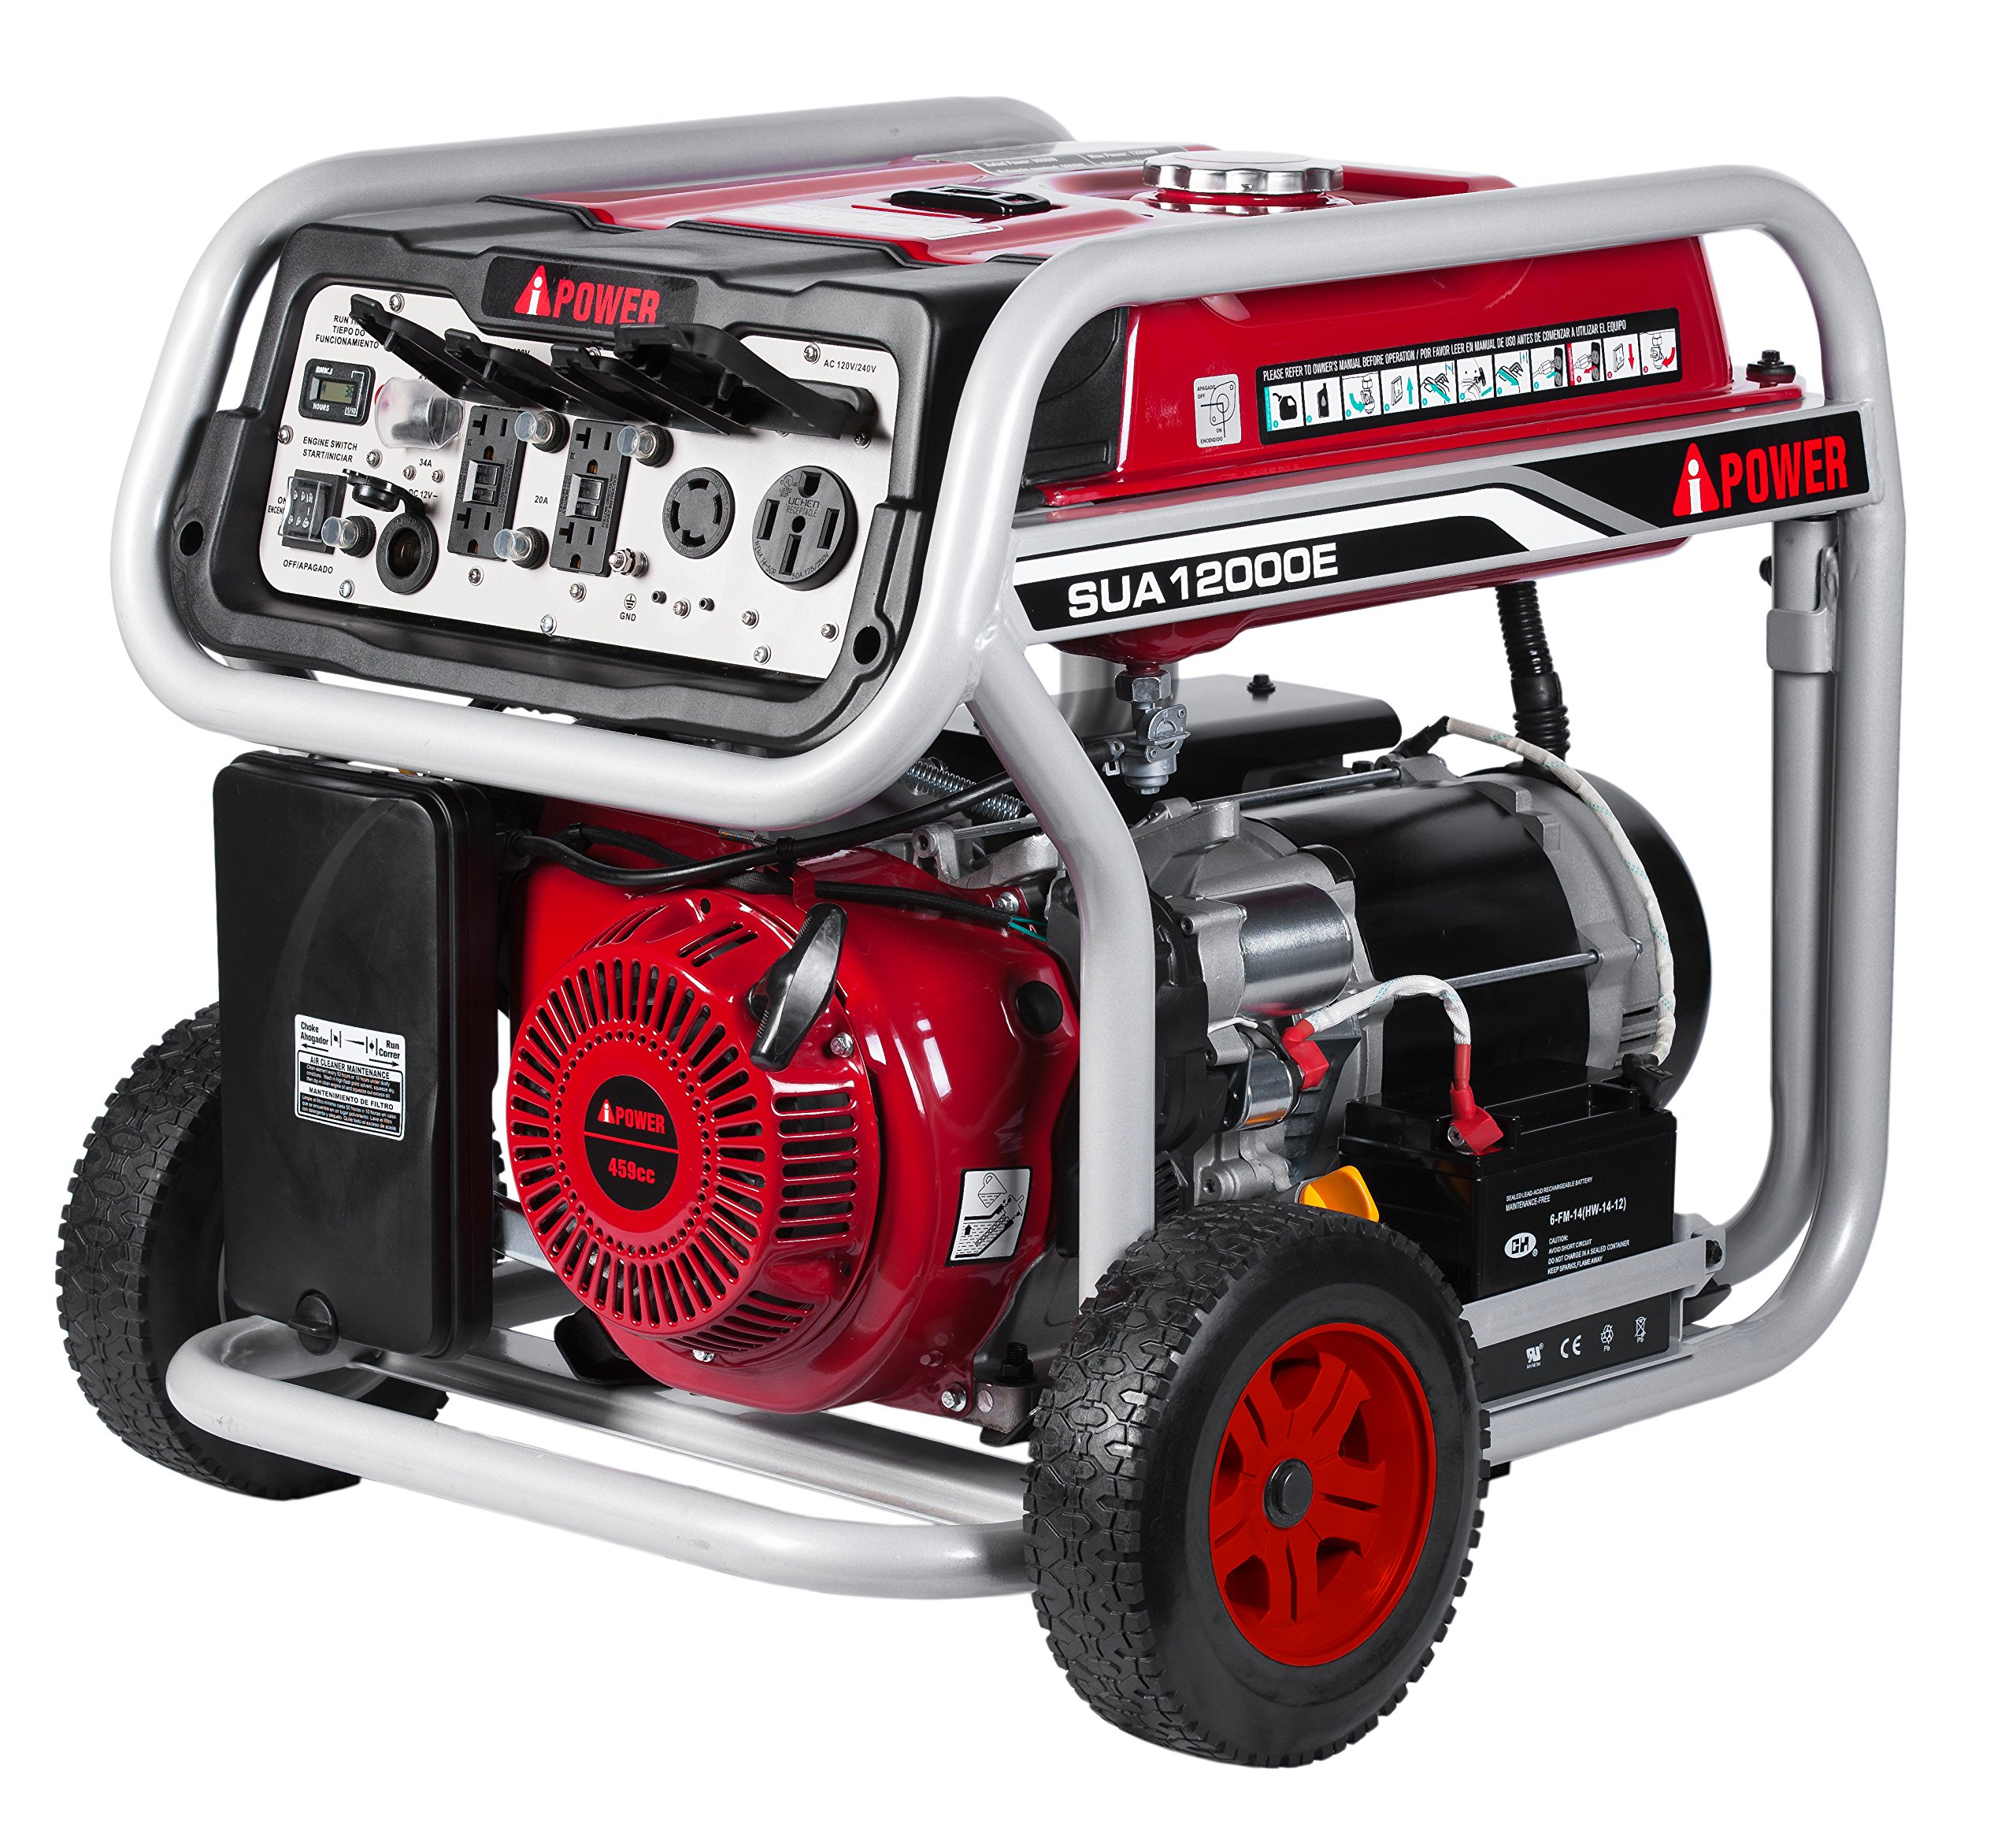 A-iPower SUA12000E 12,000-Watt Gasoline Powered Generator With Electric Start, GFCI Outlet Wheel Kit